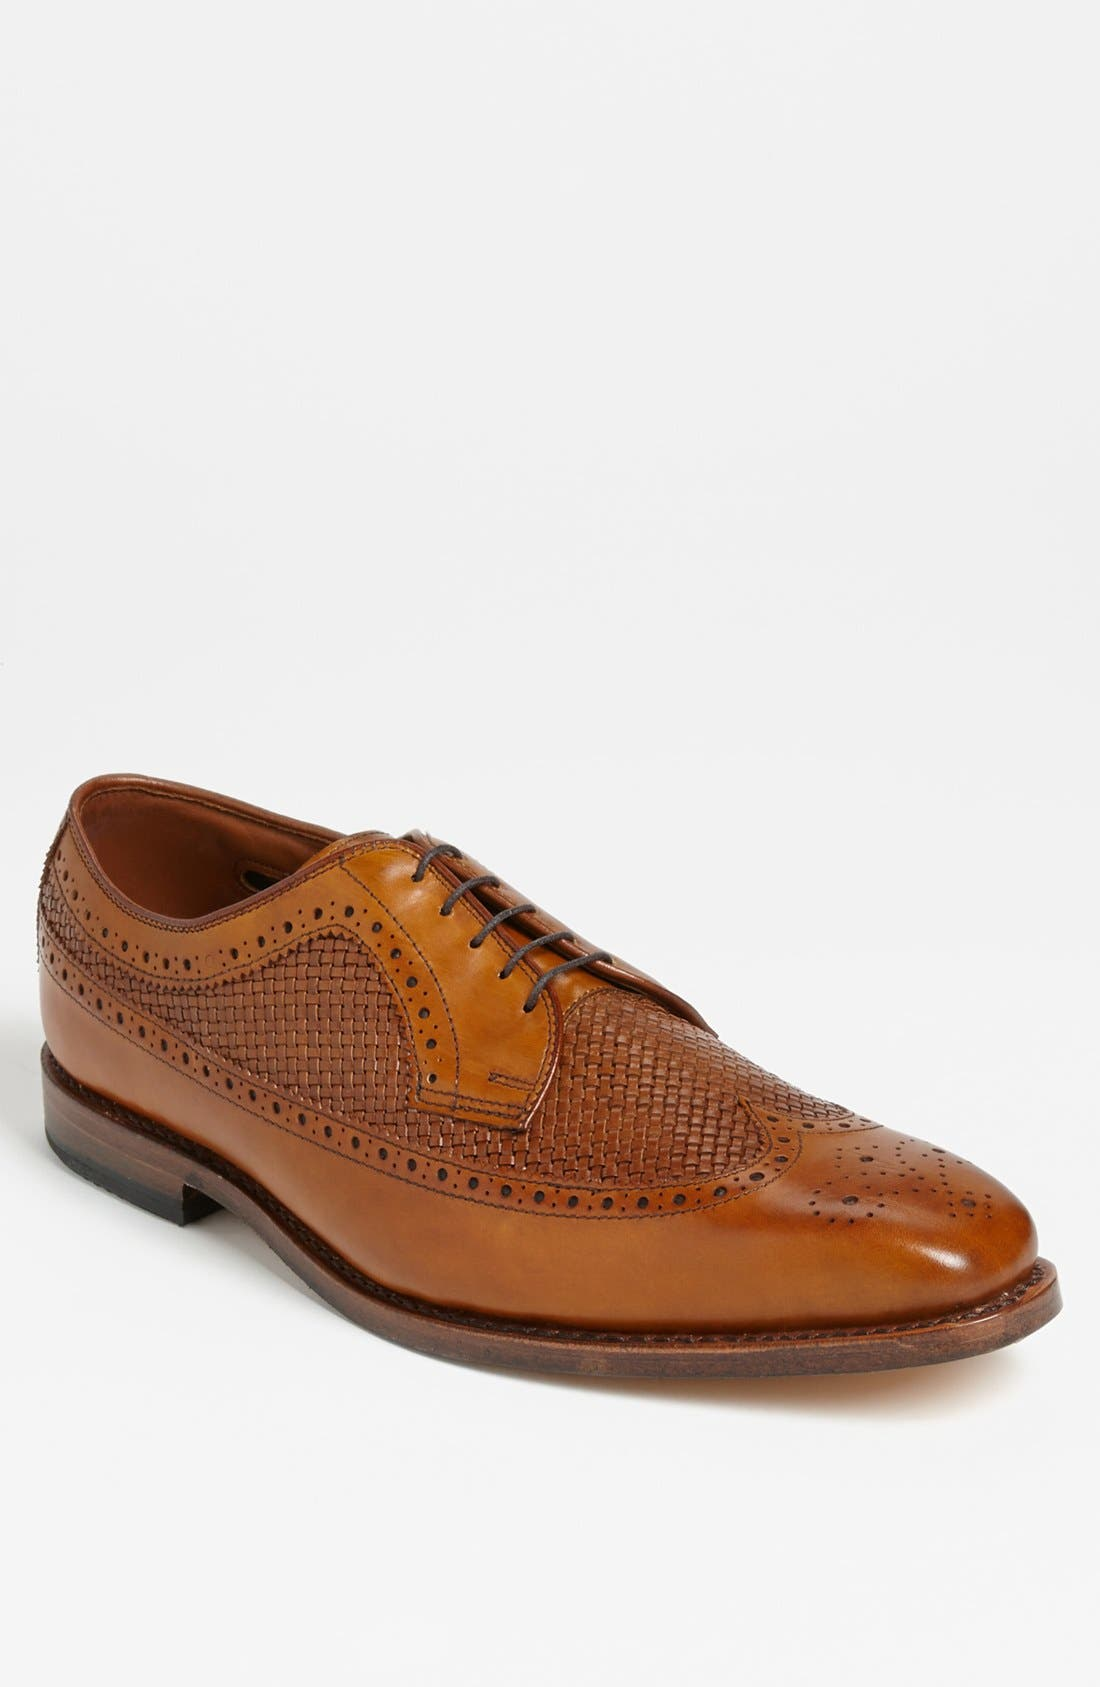 ALLEN EDMONDS 'Boca Raton' Longwing, Main, color, 210